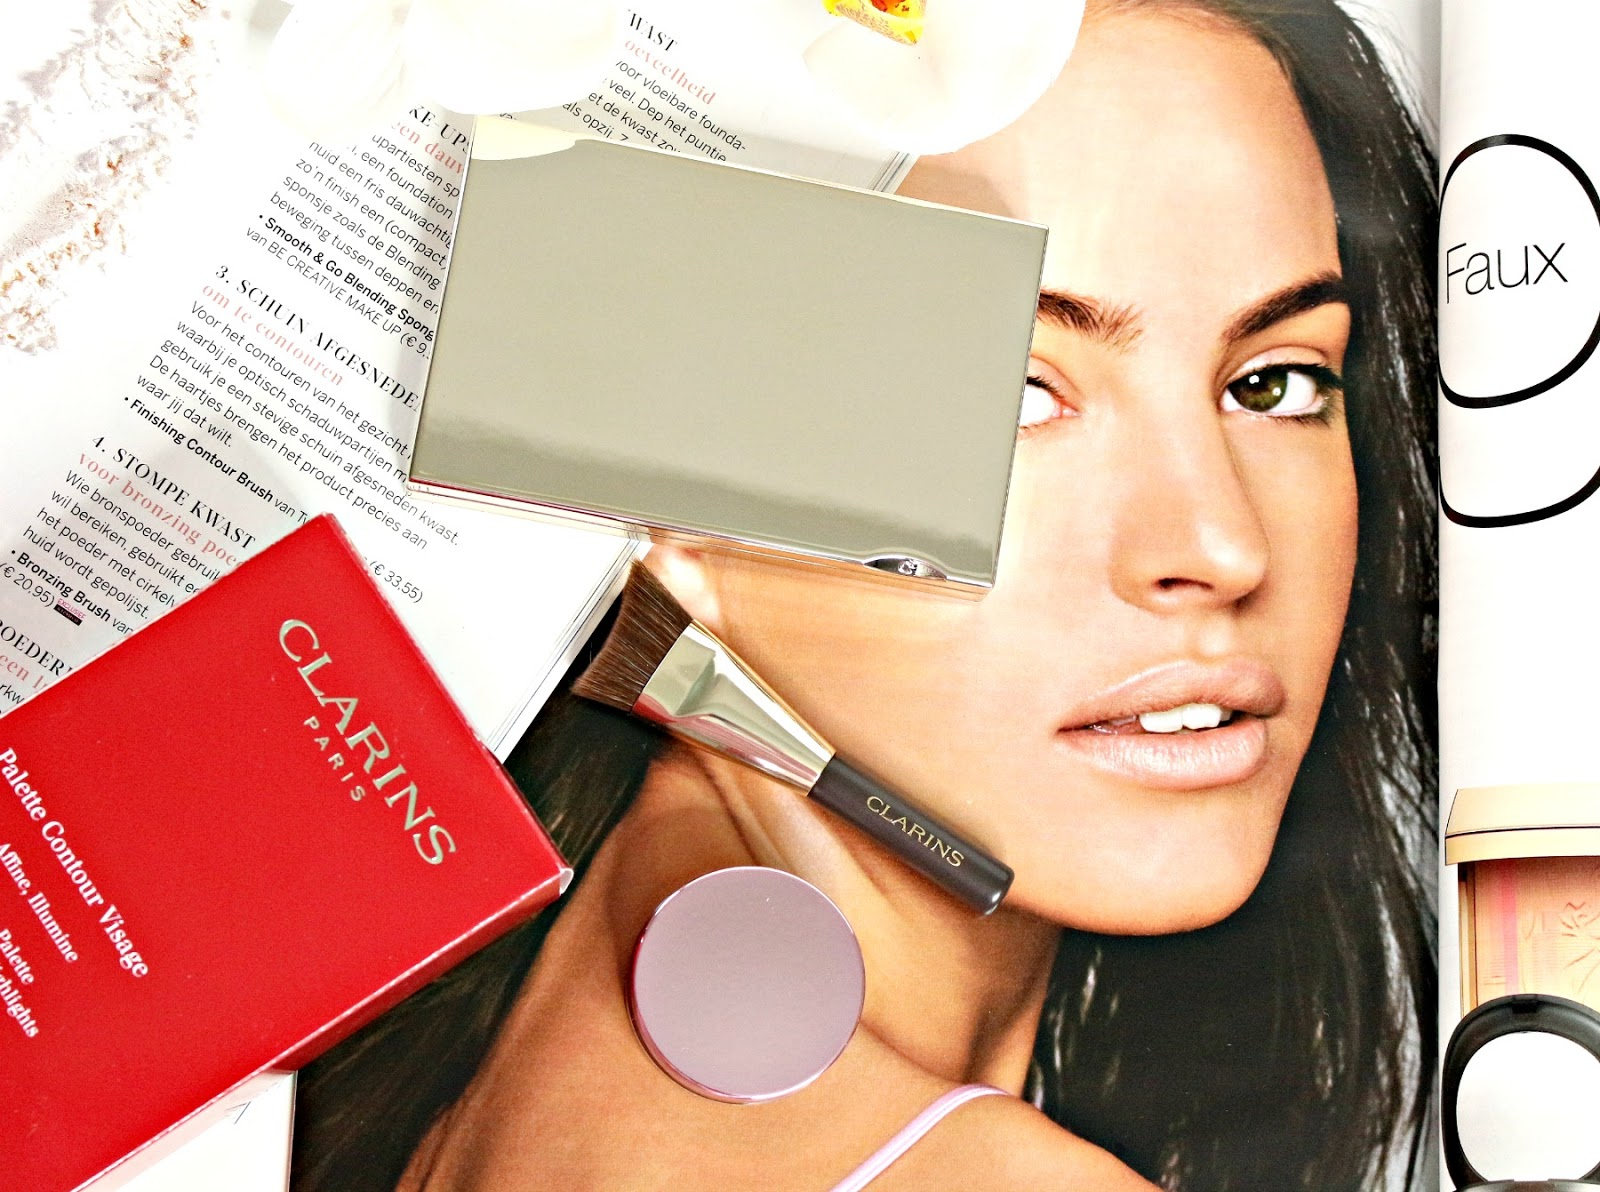 Clarins Contouring Perfection lente look